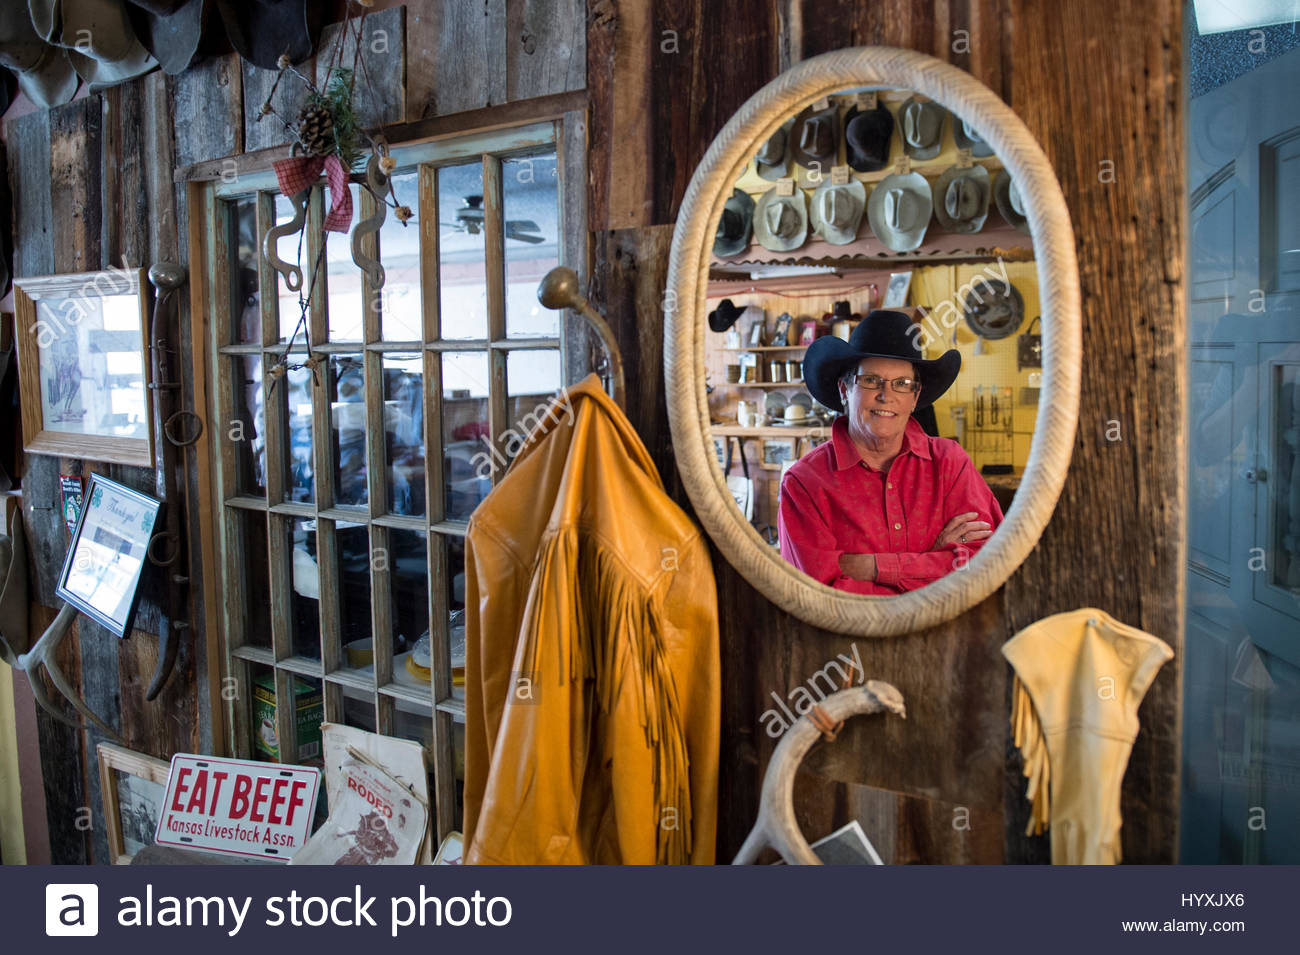 A hat maker shows off her famous creations in Twin Bridges, Montana. - Stock Image